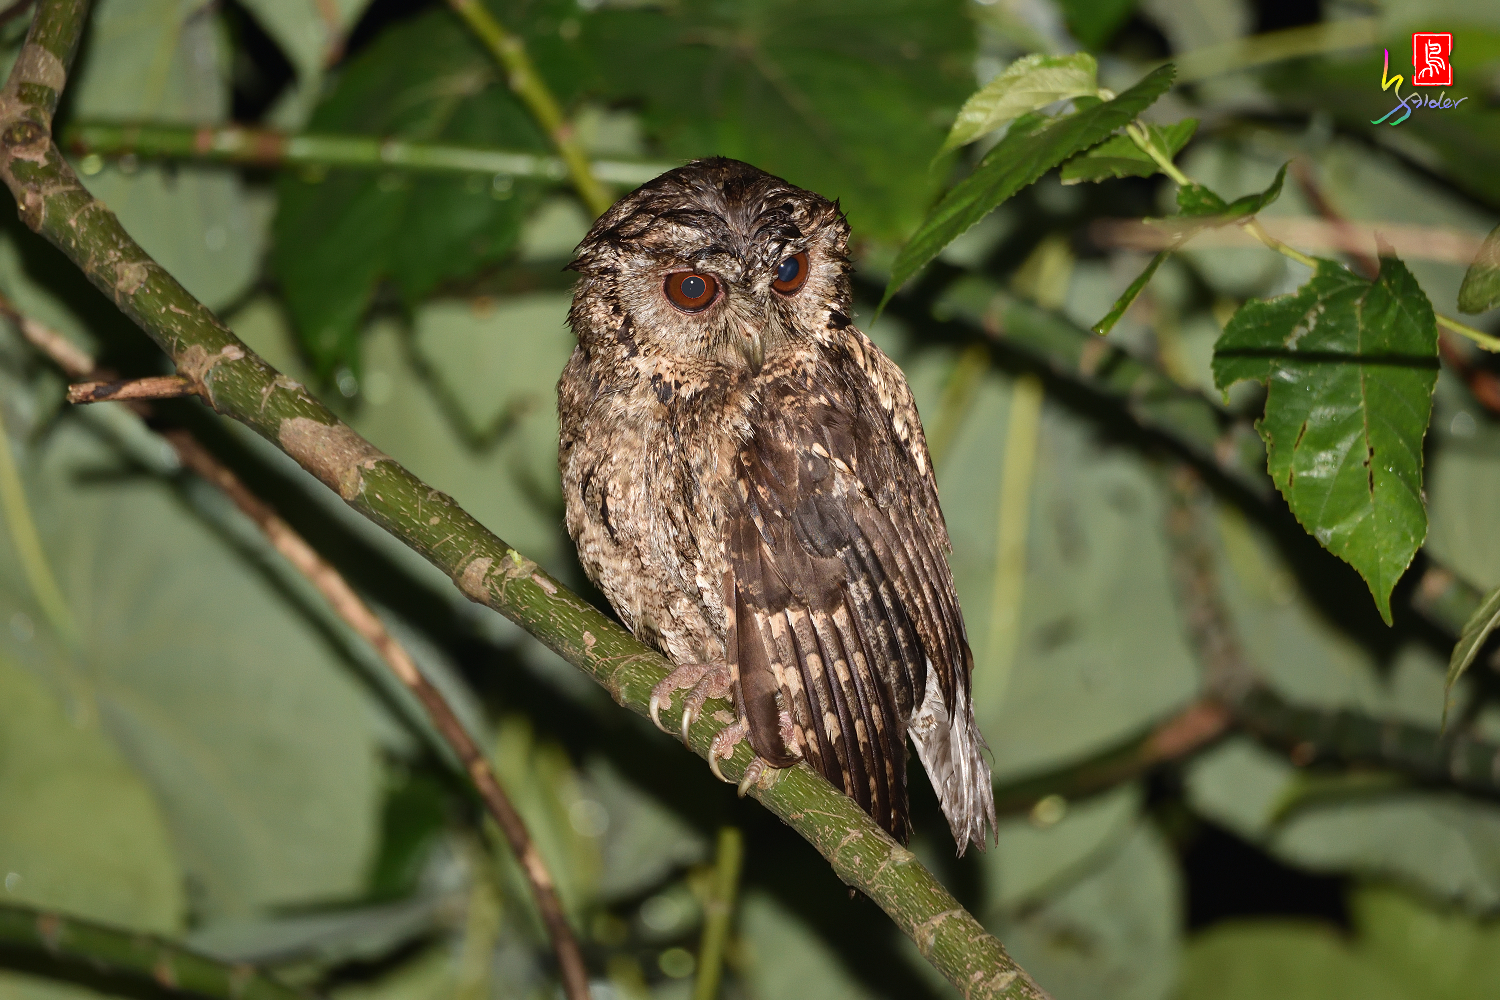 Collard_Scops_Owl_1510